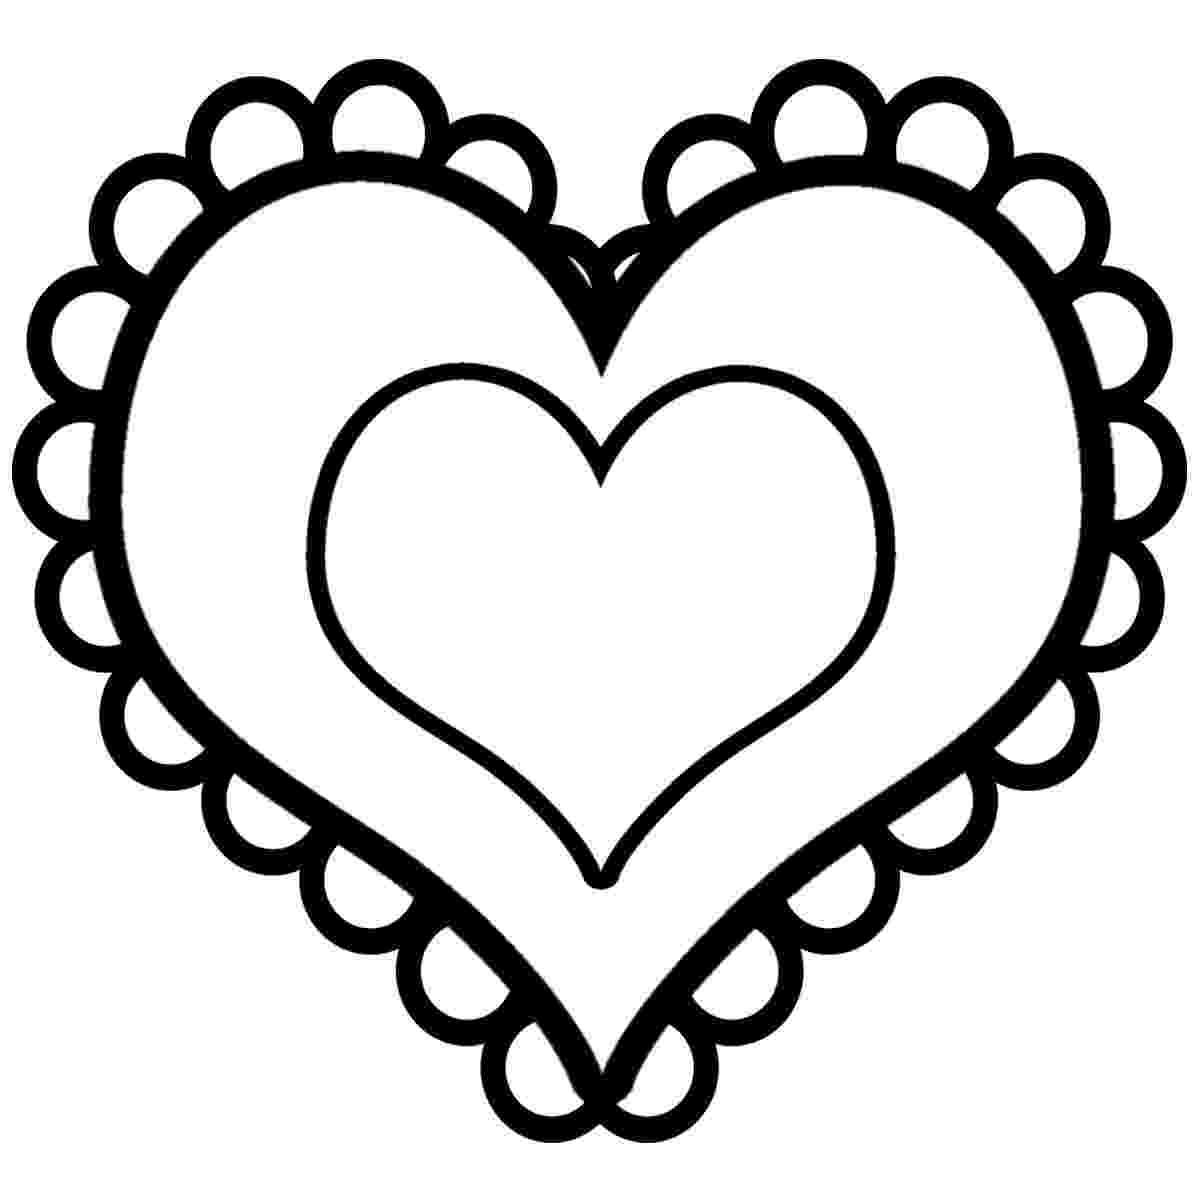 heart coloring page 35 free printable heart coloring pages heart coloring page